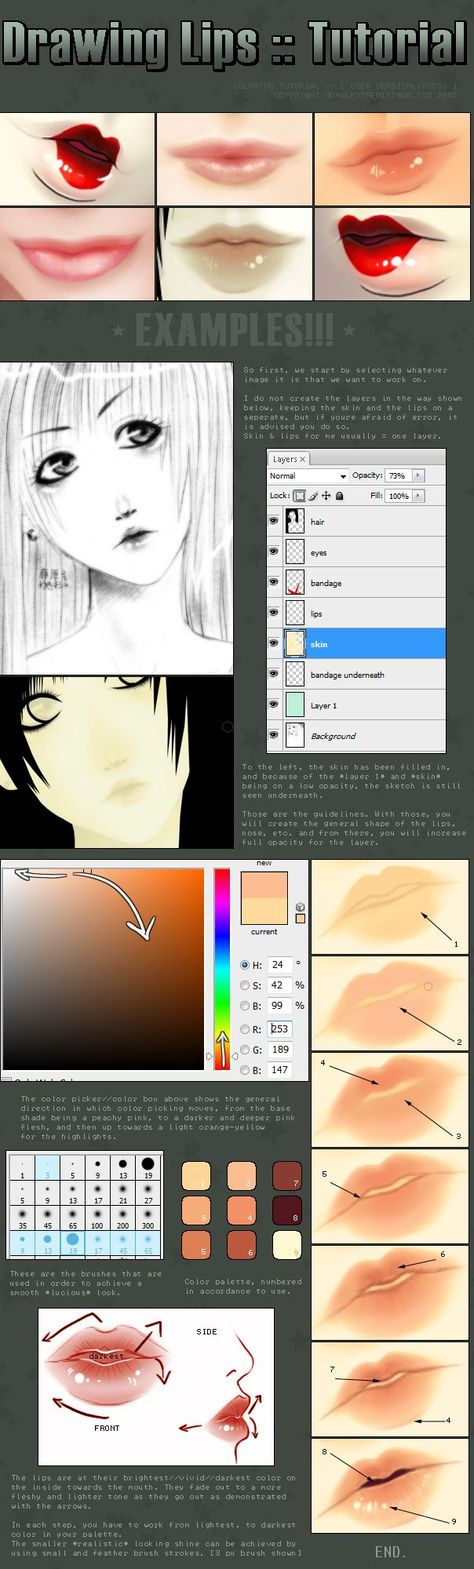 Photo of Drawing Lips :: Tutorial by moral-extremist on DeviantArt